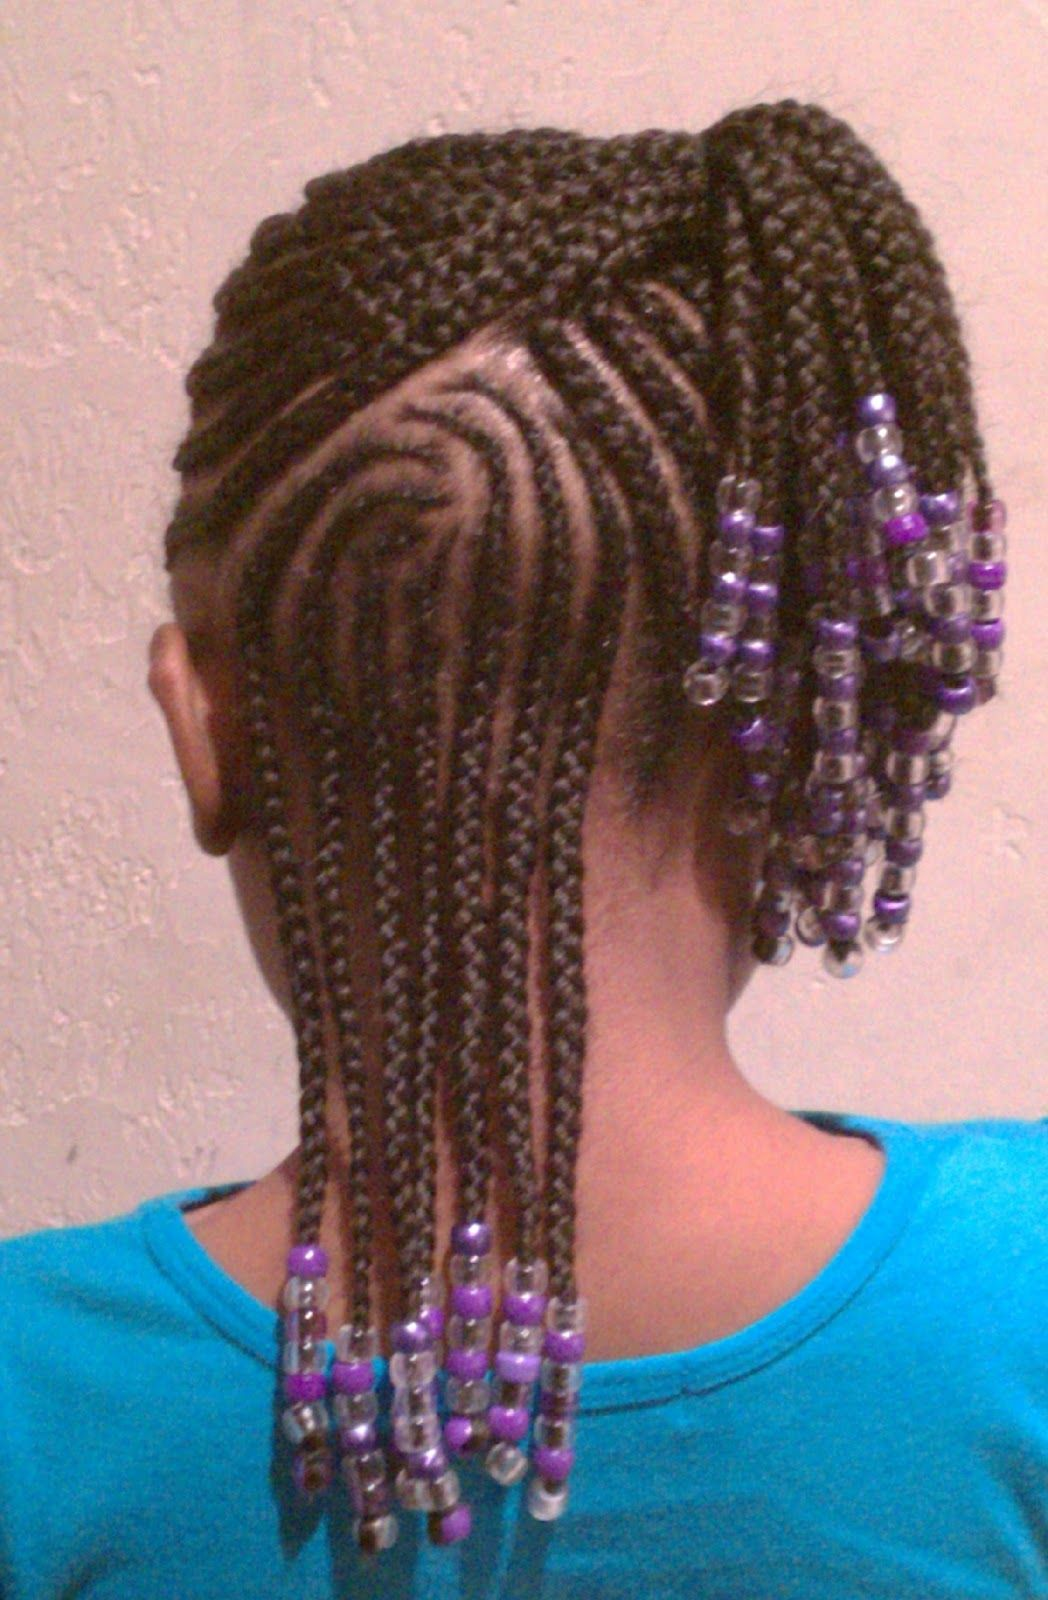 Kidscornrowdesigns design cornrows black women natural